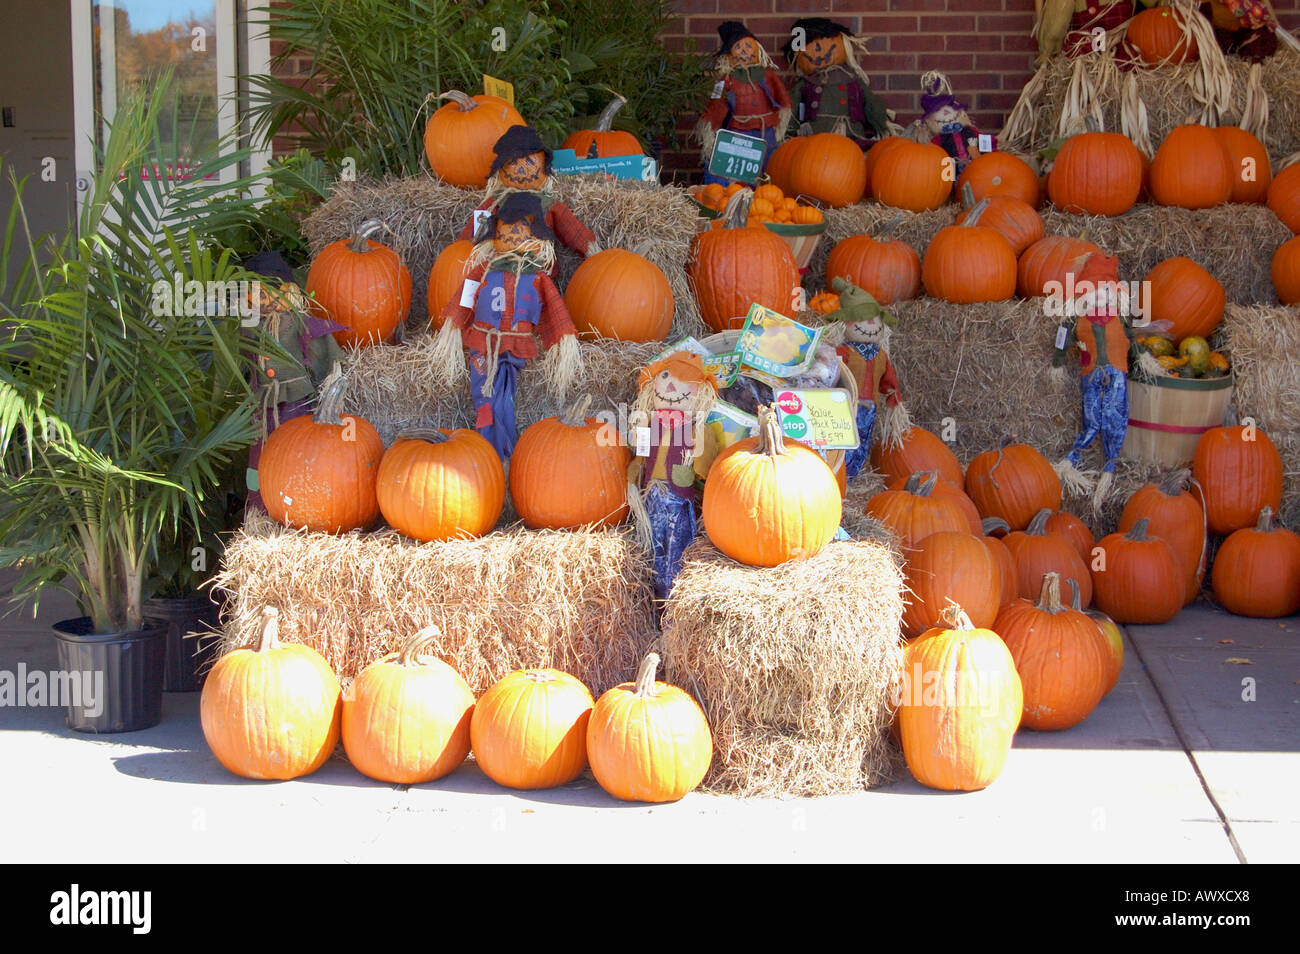 How to store pumpkins - Pumpkins On Display Outside An American Store